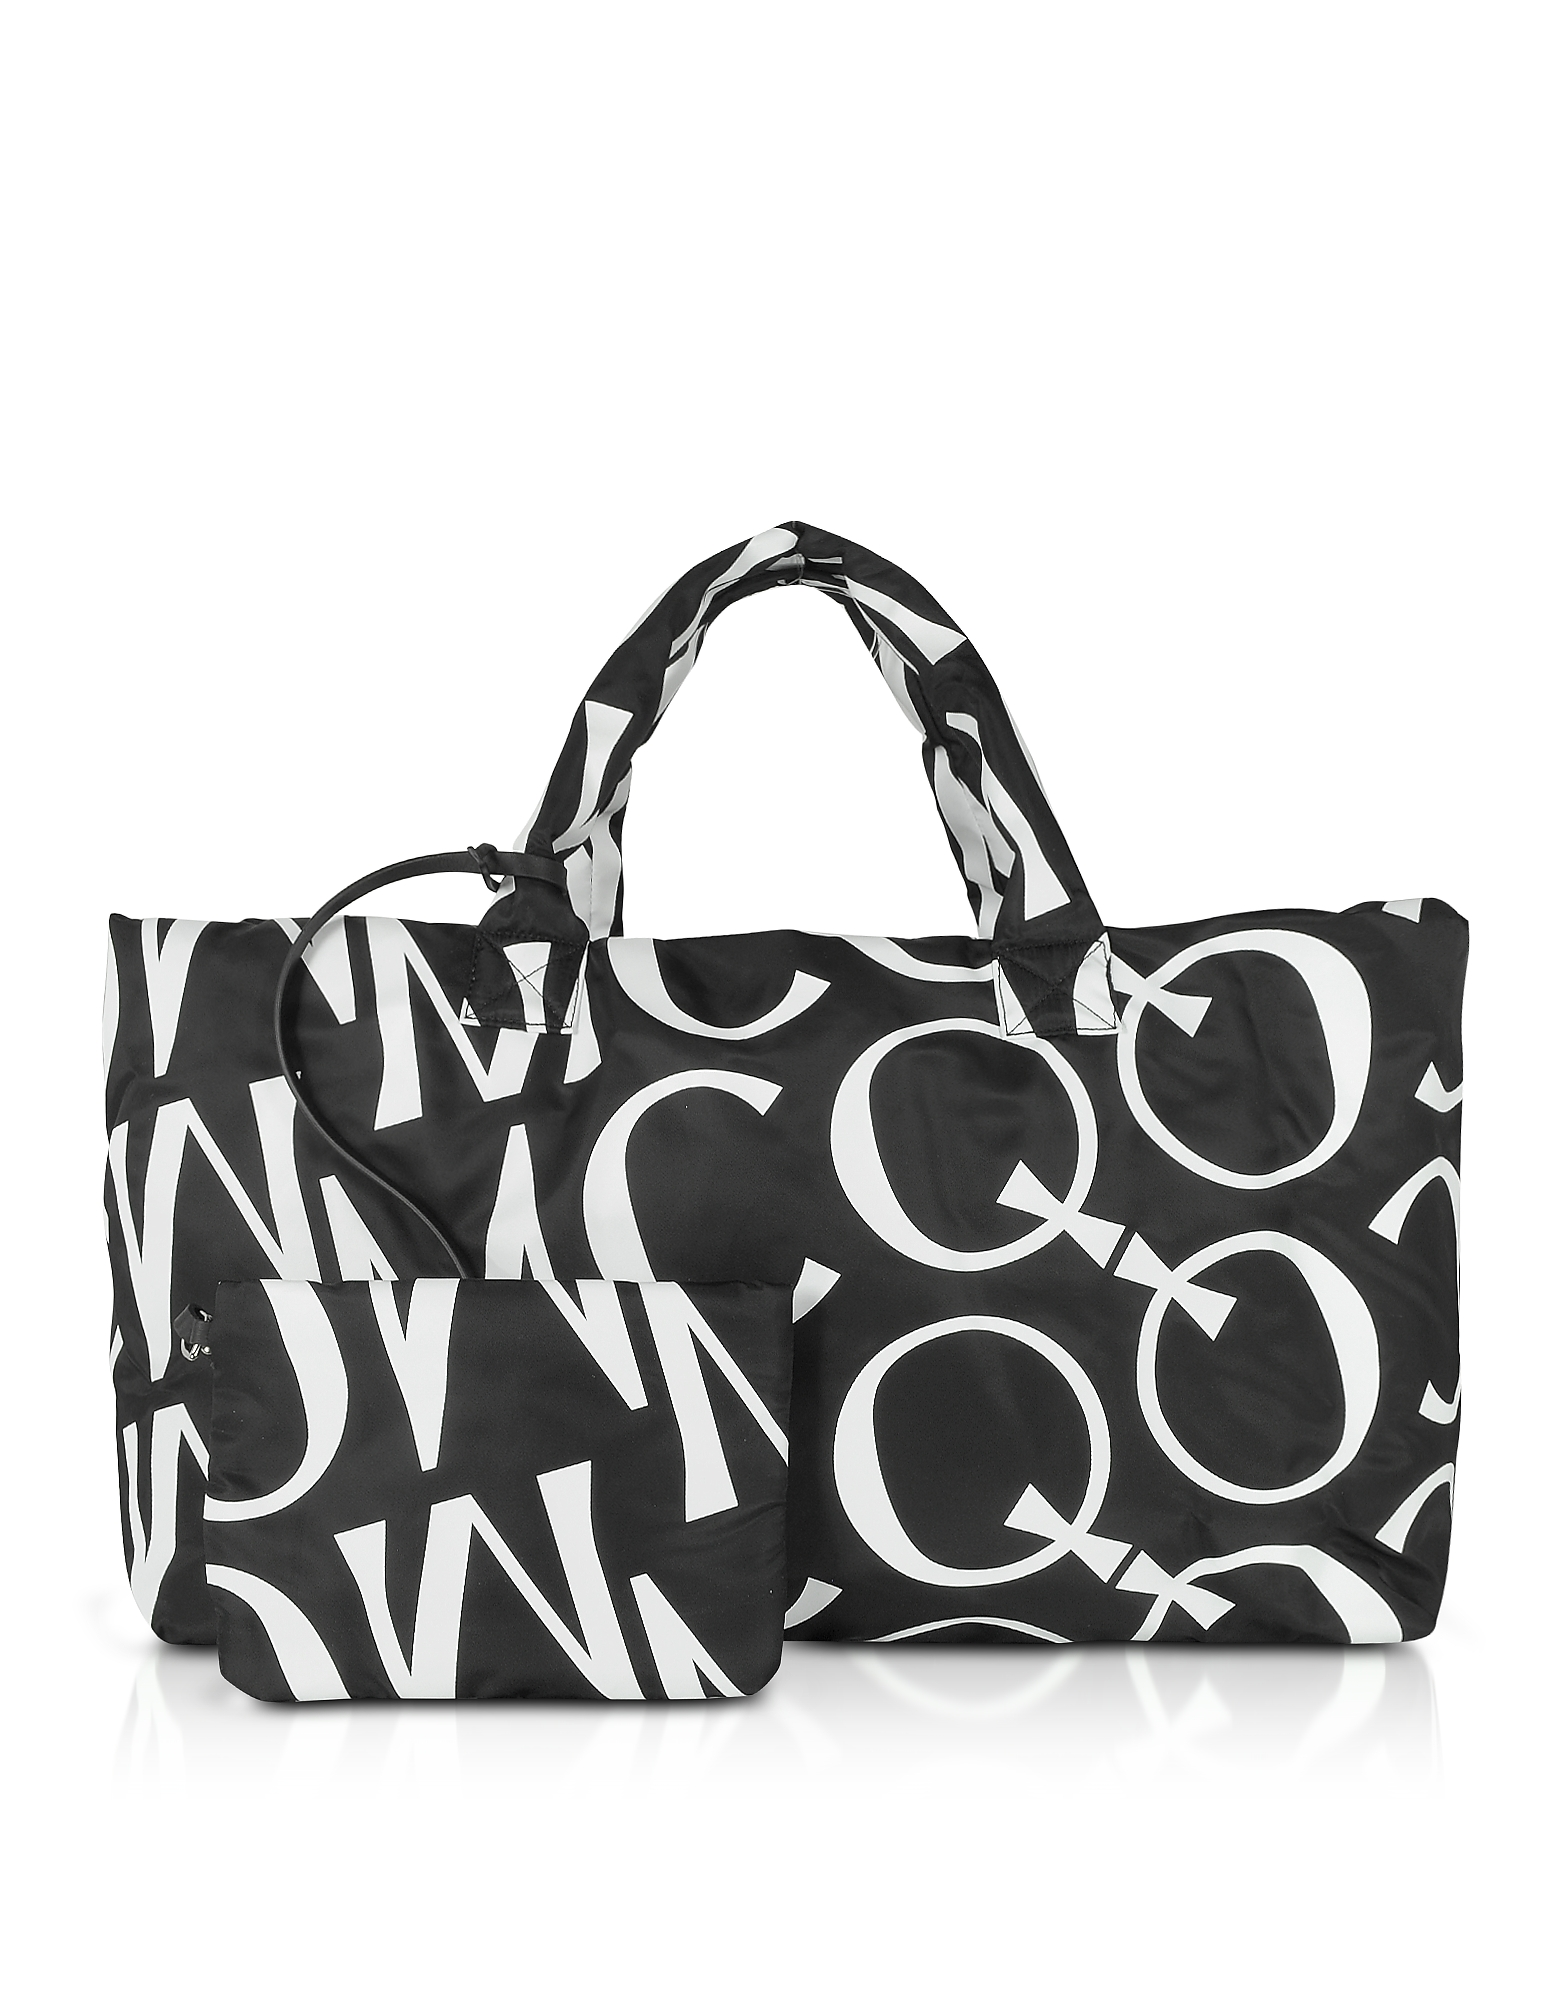 McQ Alexander McQueen Designer Handbags, Inside Out Black & White Signature Tote Bag